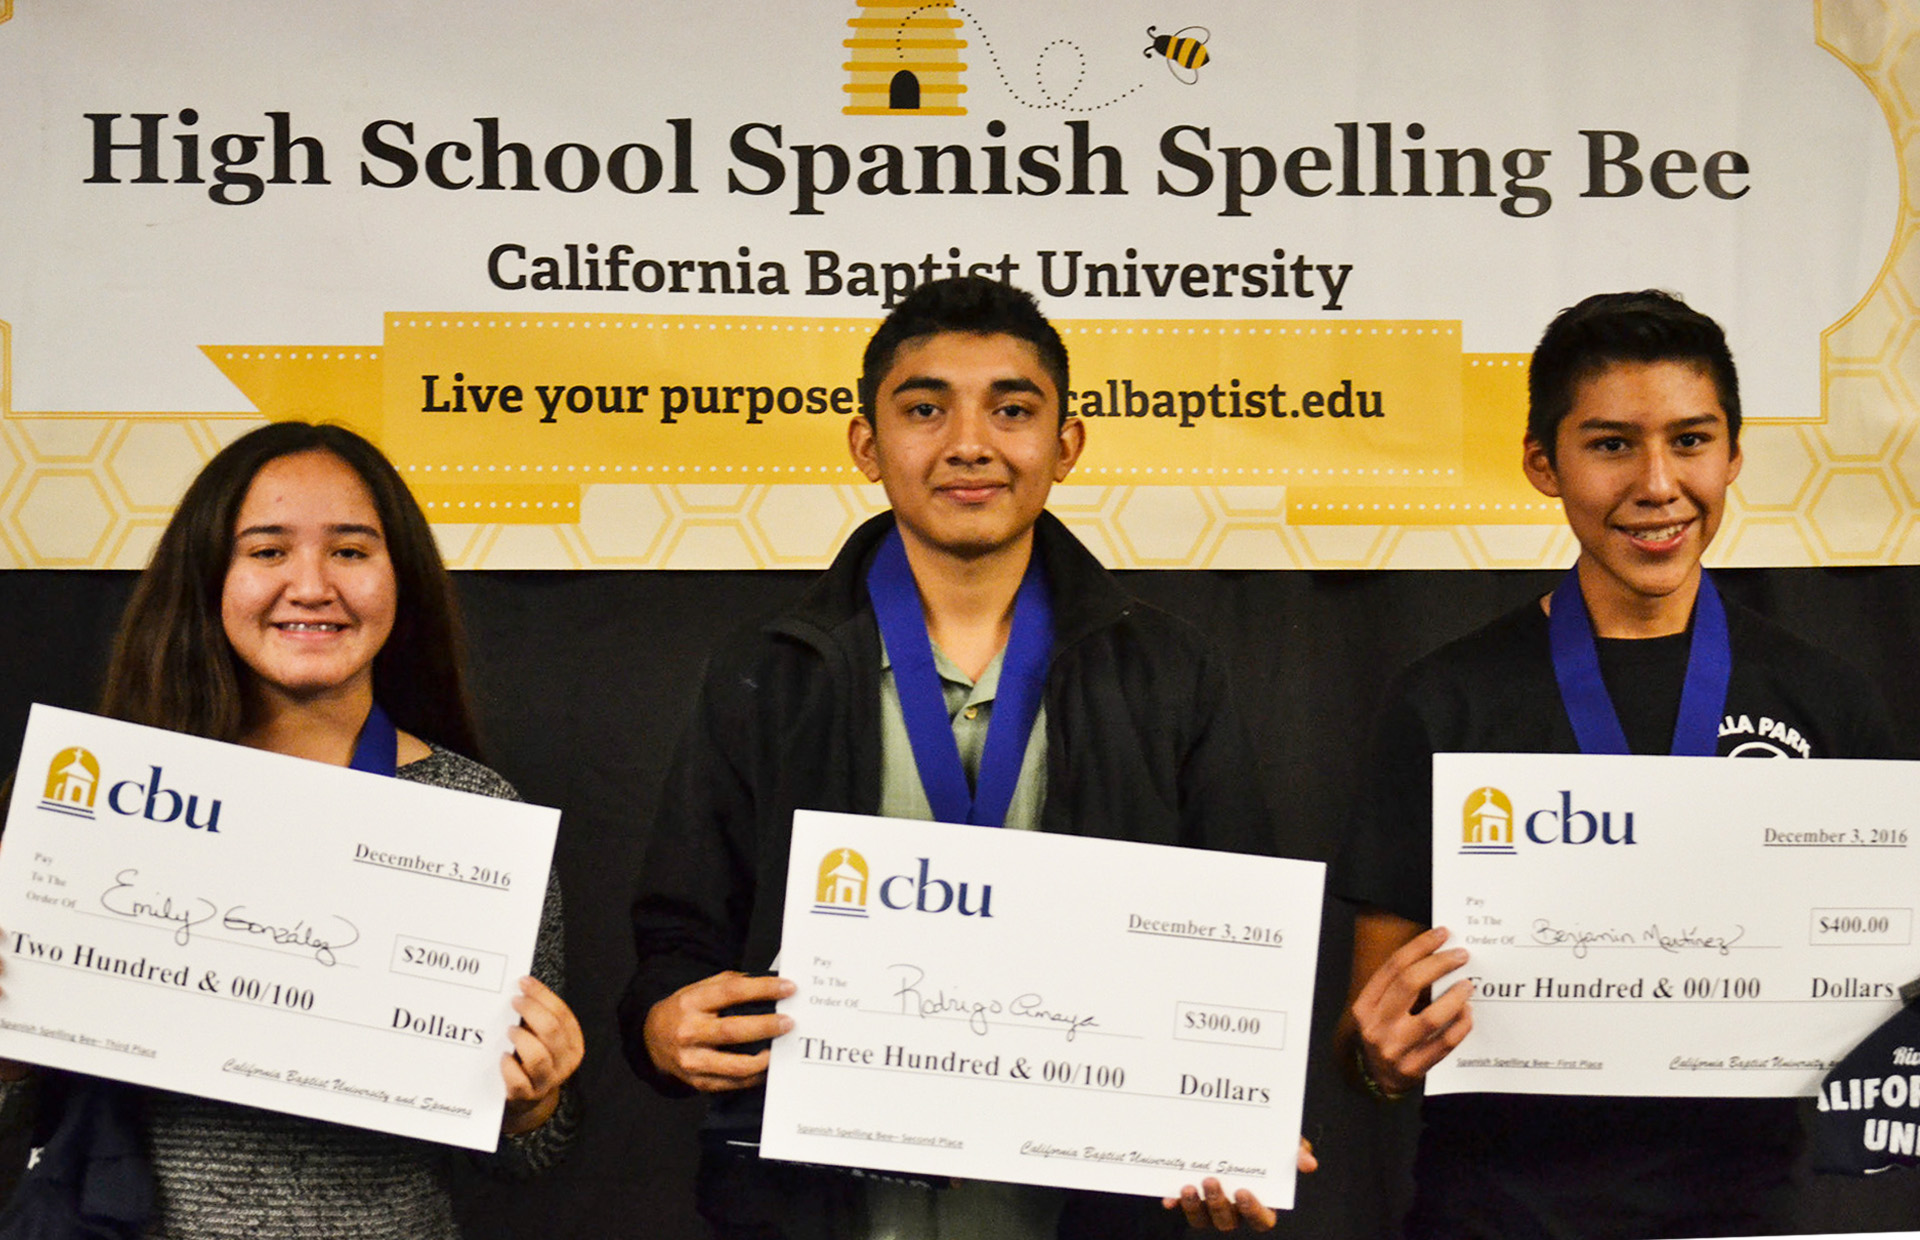 Spanish Spelling Bee 2016